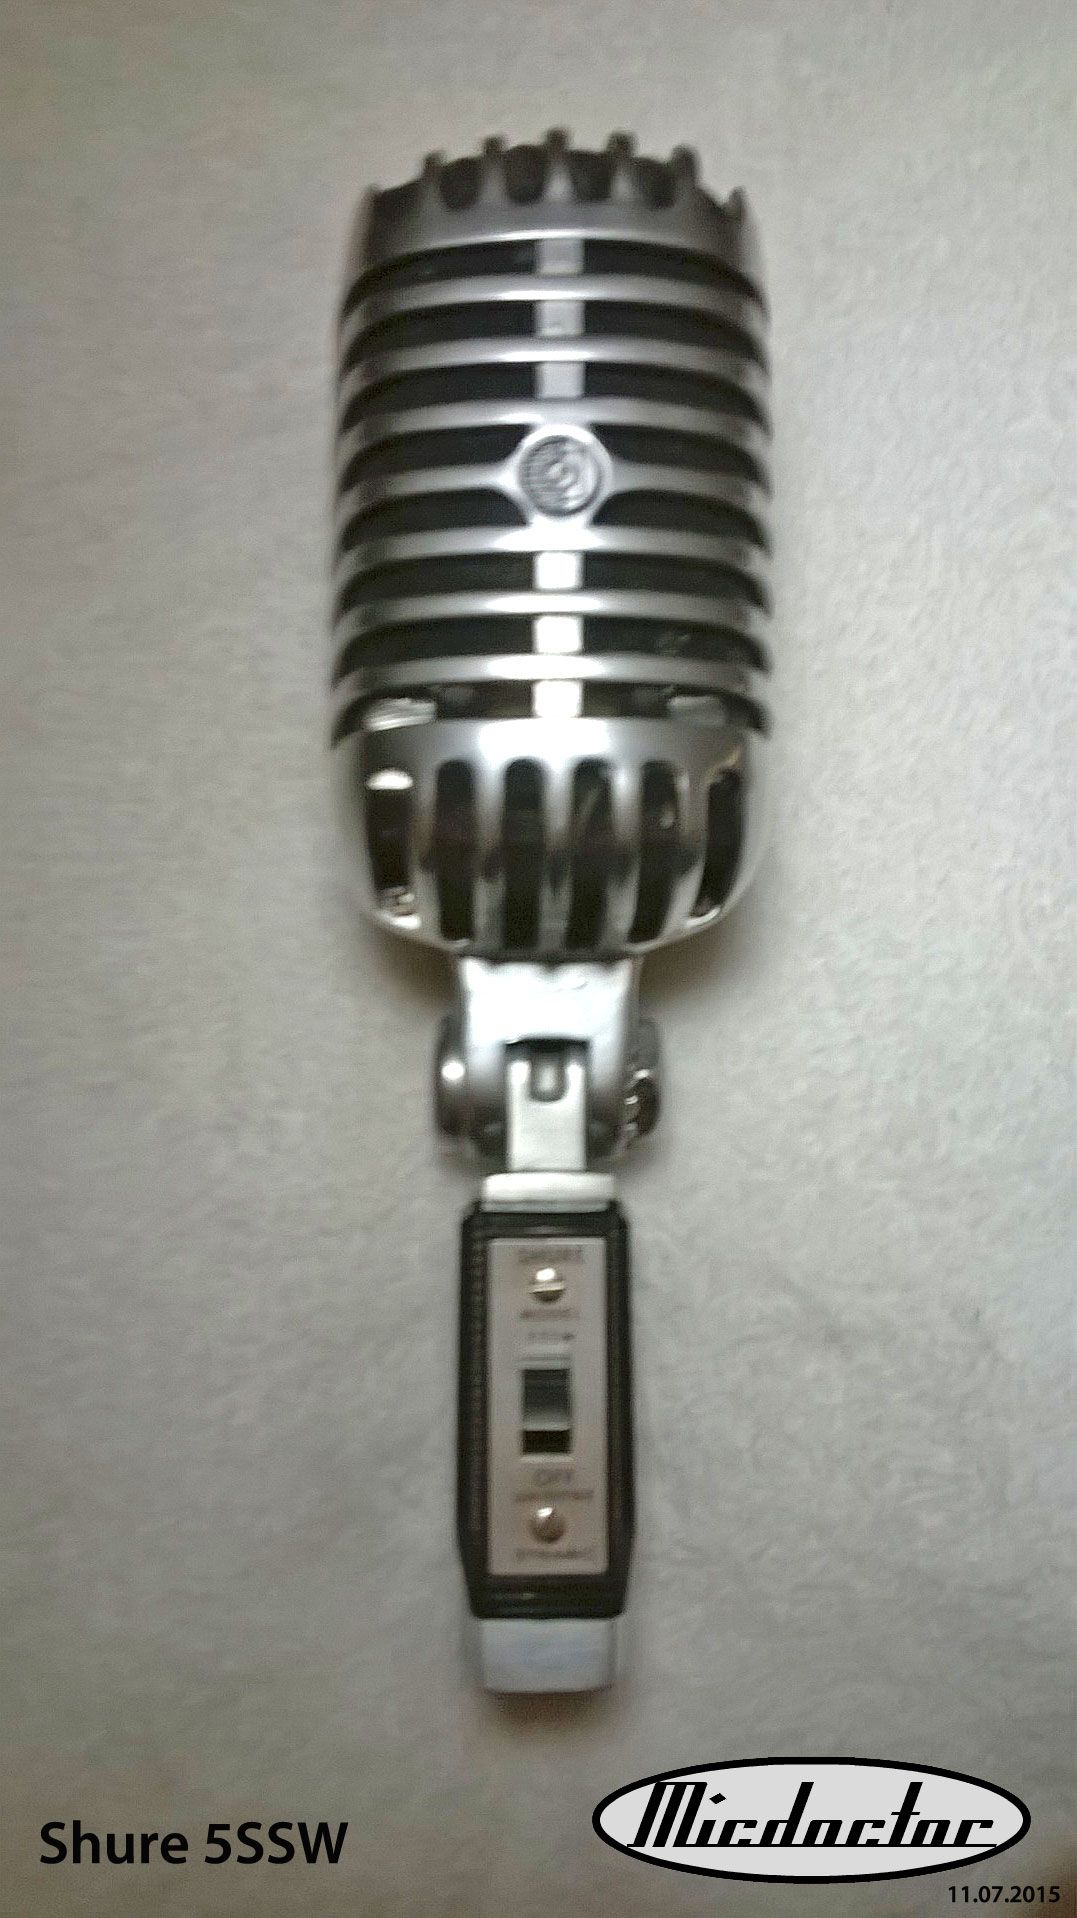 a vintage fabulously original shure 55sw microphone for sale front view micdoctor. Black Bedroom Furniture Sets. Home Design Ideas